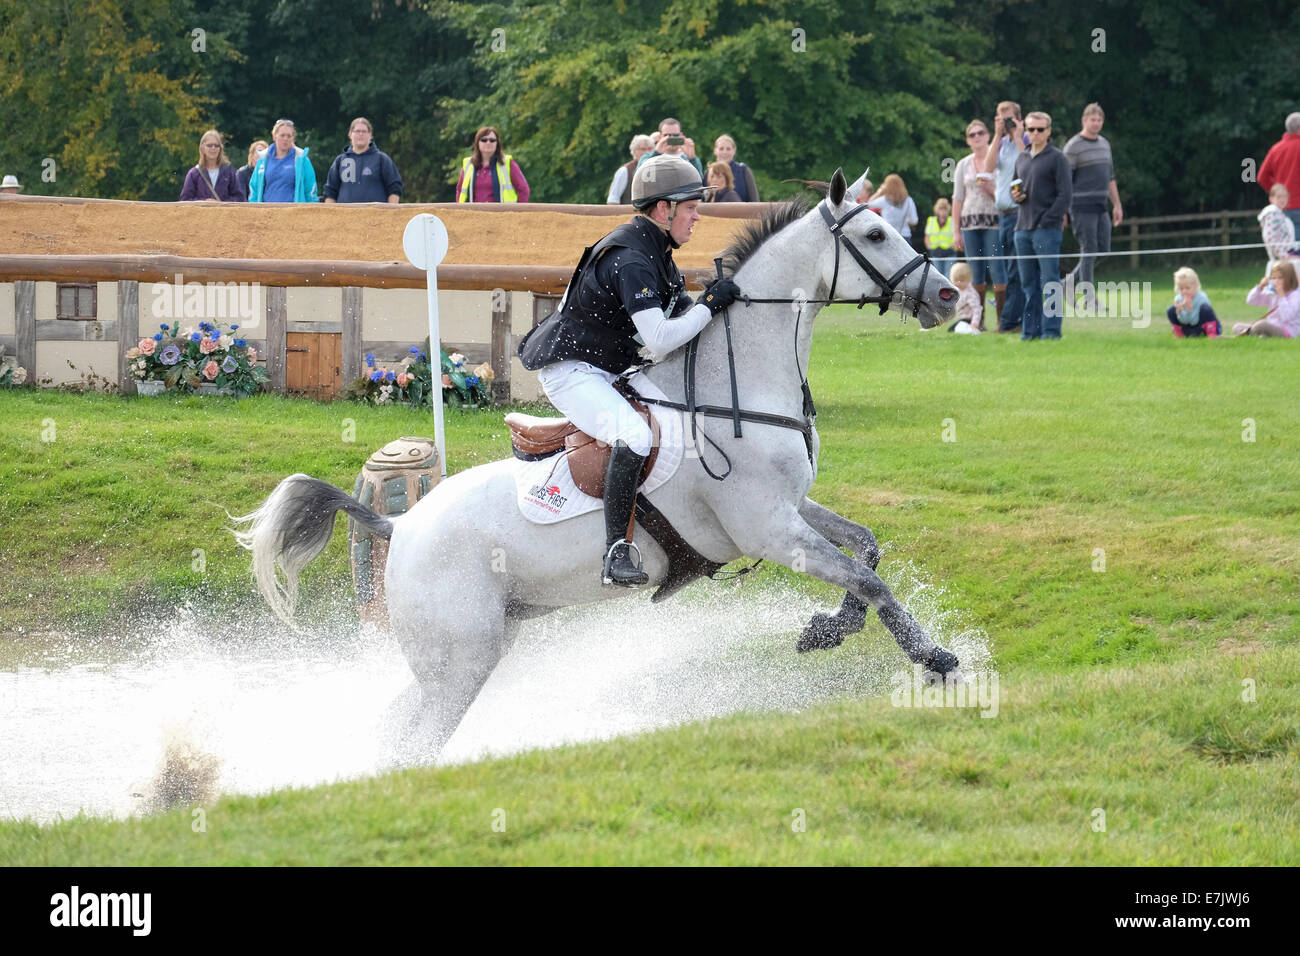 Angus Smales at Blenheim International Horse Trials 2014 riding A BIT MUCH - Stock Image